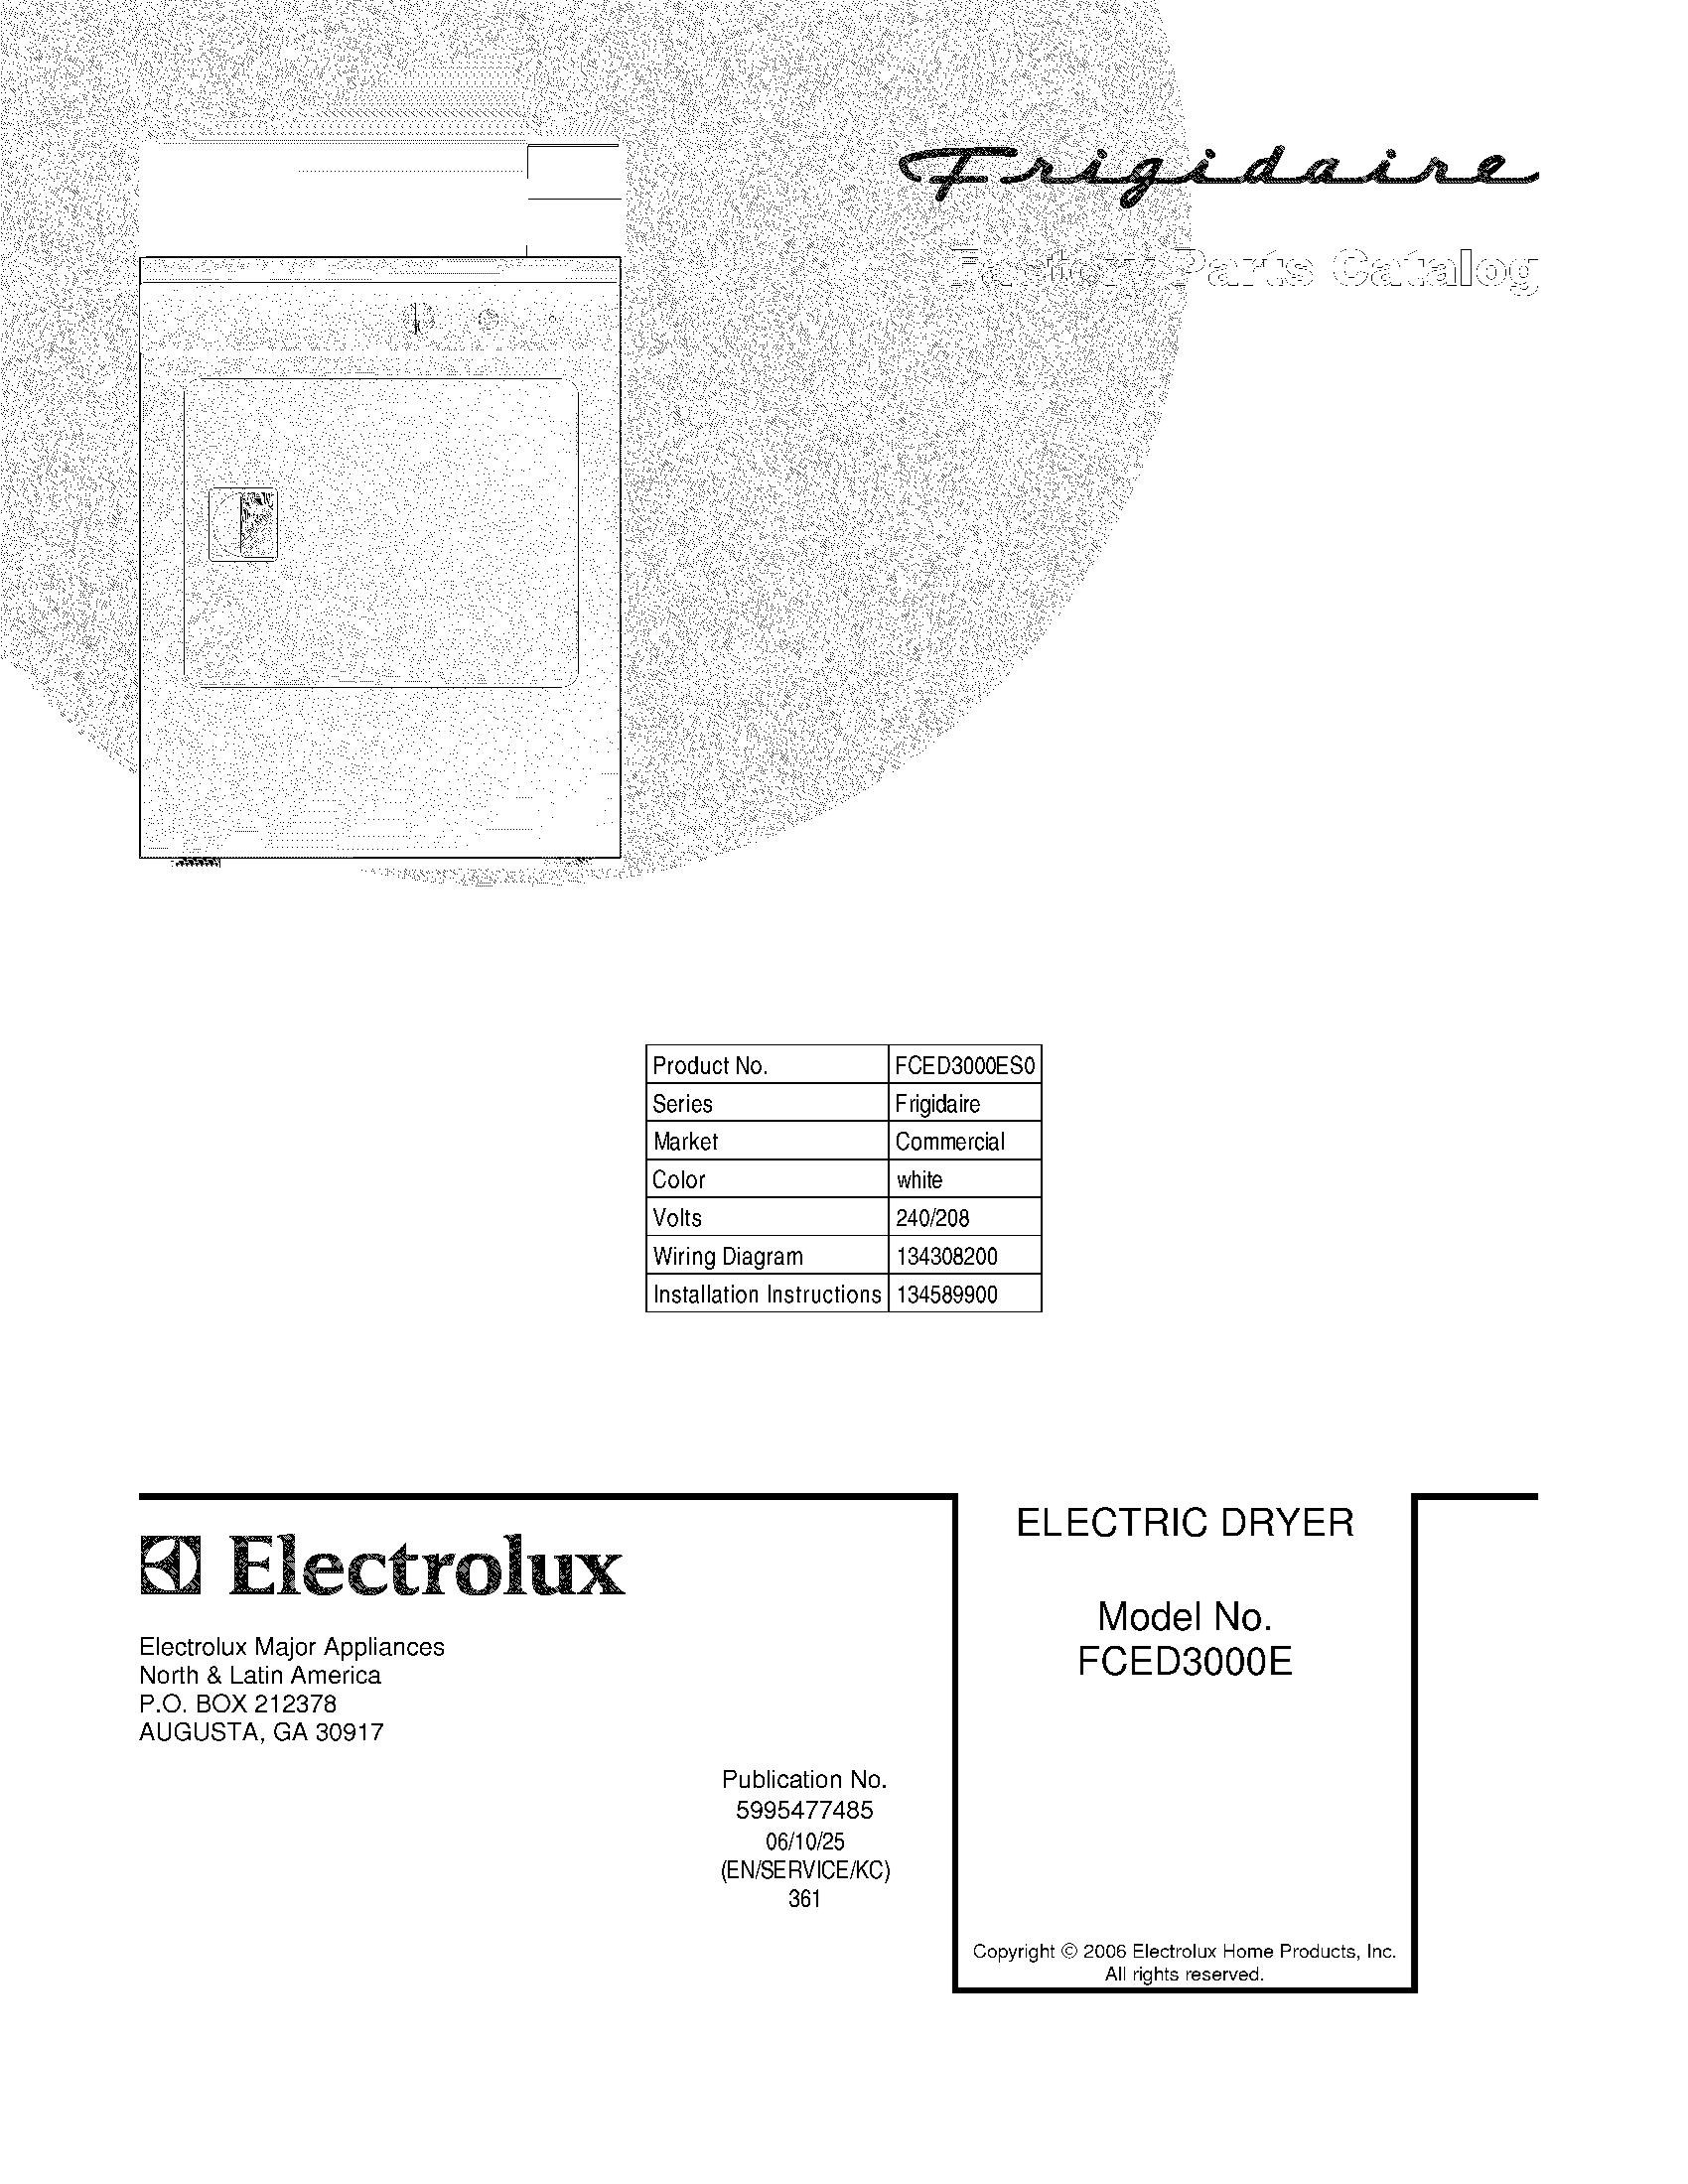 ElectroluxImg_19000101 20150717_00041943?width=1000 fced3000es0 frigidaire company appliance parts Frigidaire Dryer Repair Manual at nearapp.co